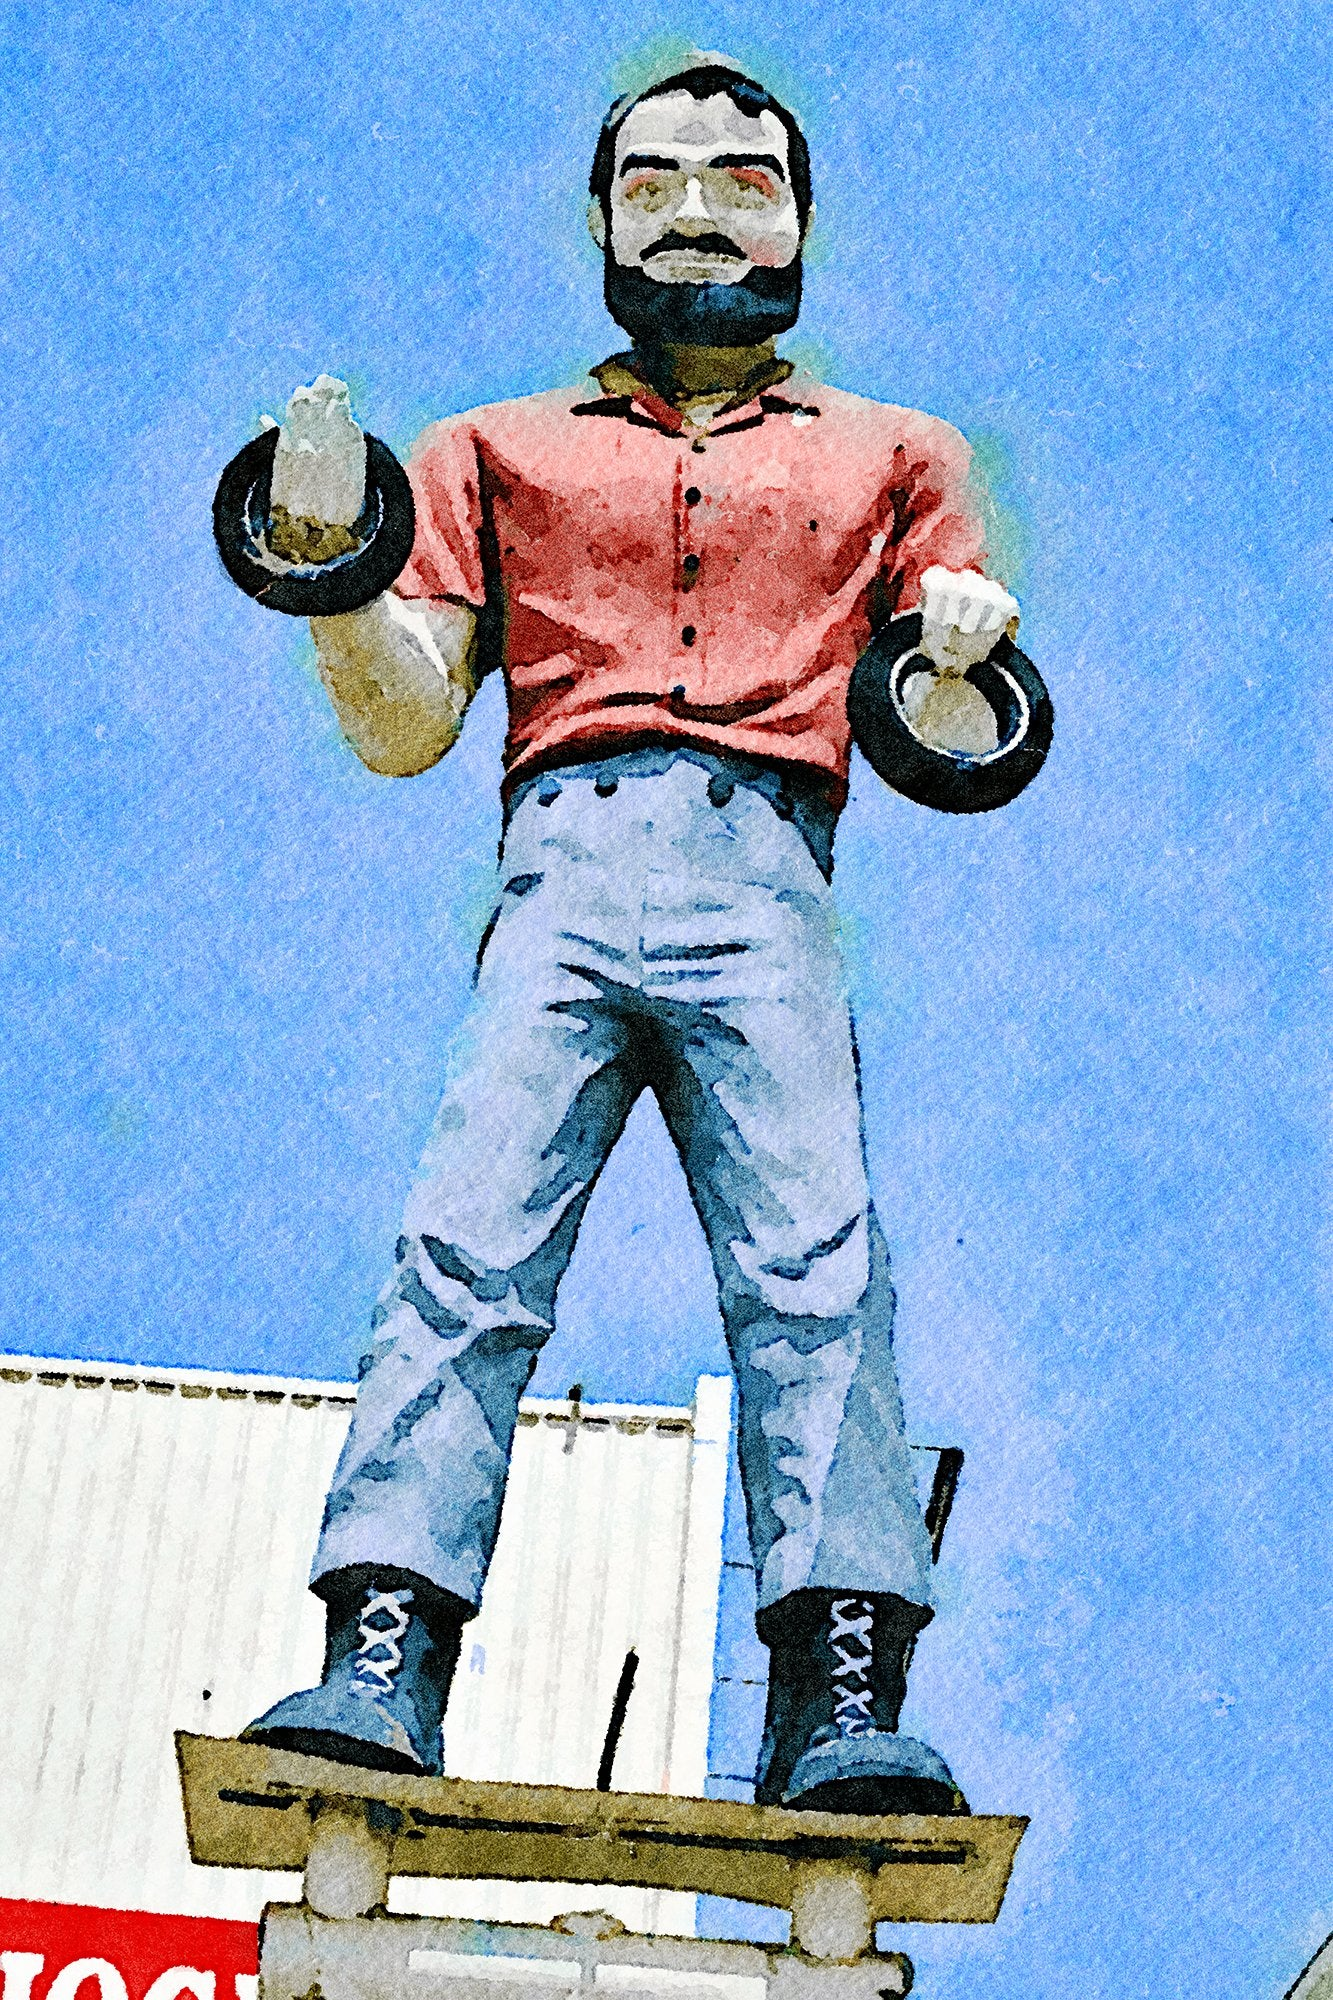 Tire Man Big Brand Tire Statue, Van Nuys, California, Reworked, Series 1